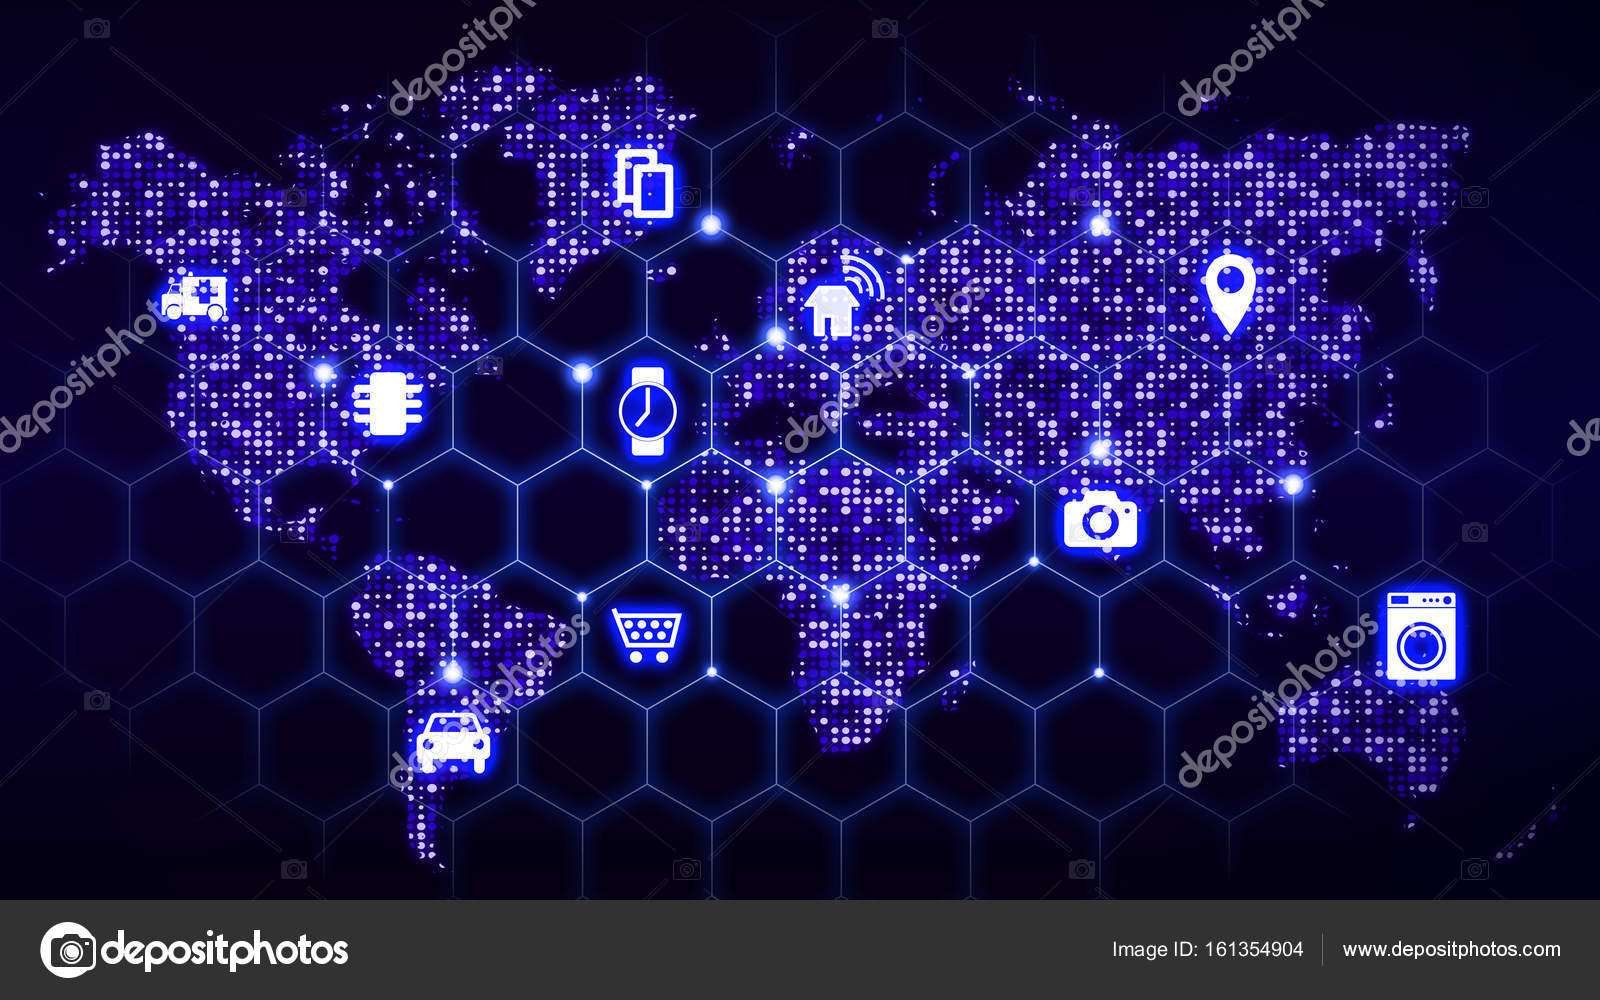 Iot world map hexagon grid internet of things concept stock photo iot world map hexagon grid internet of things concept stock photo gumiabroncs Image collections